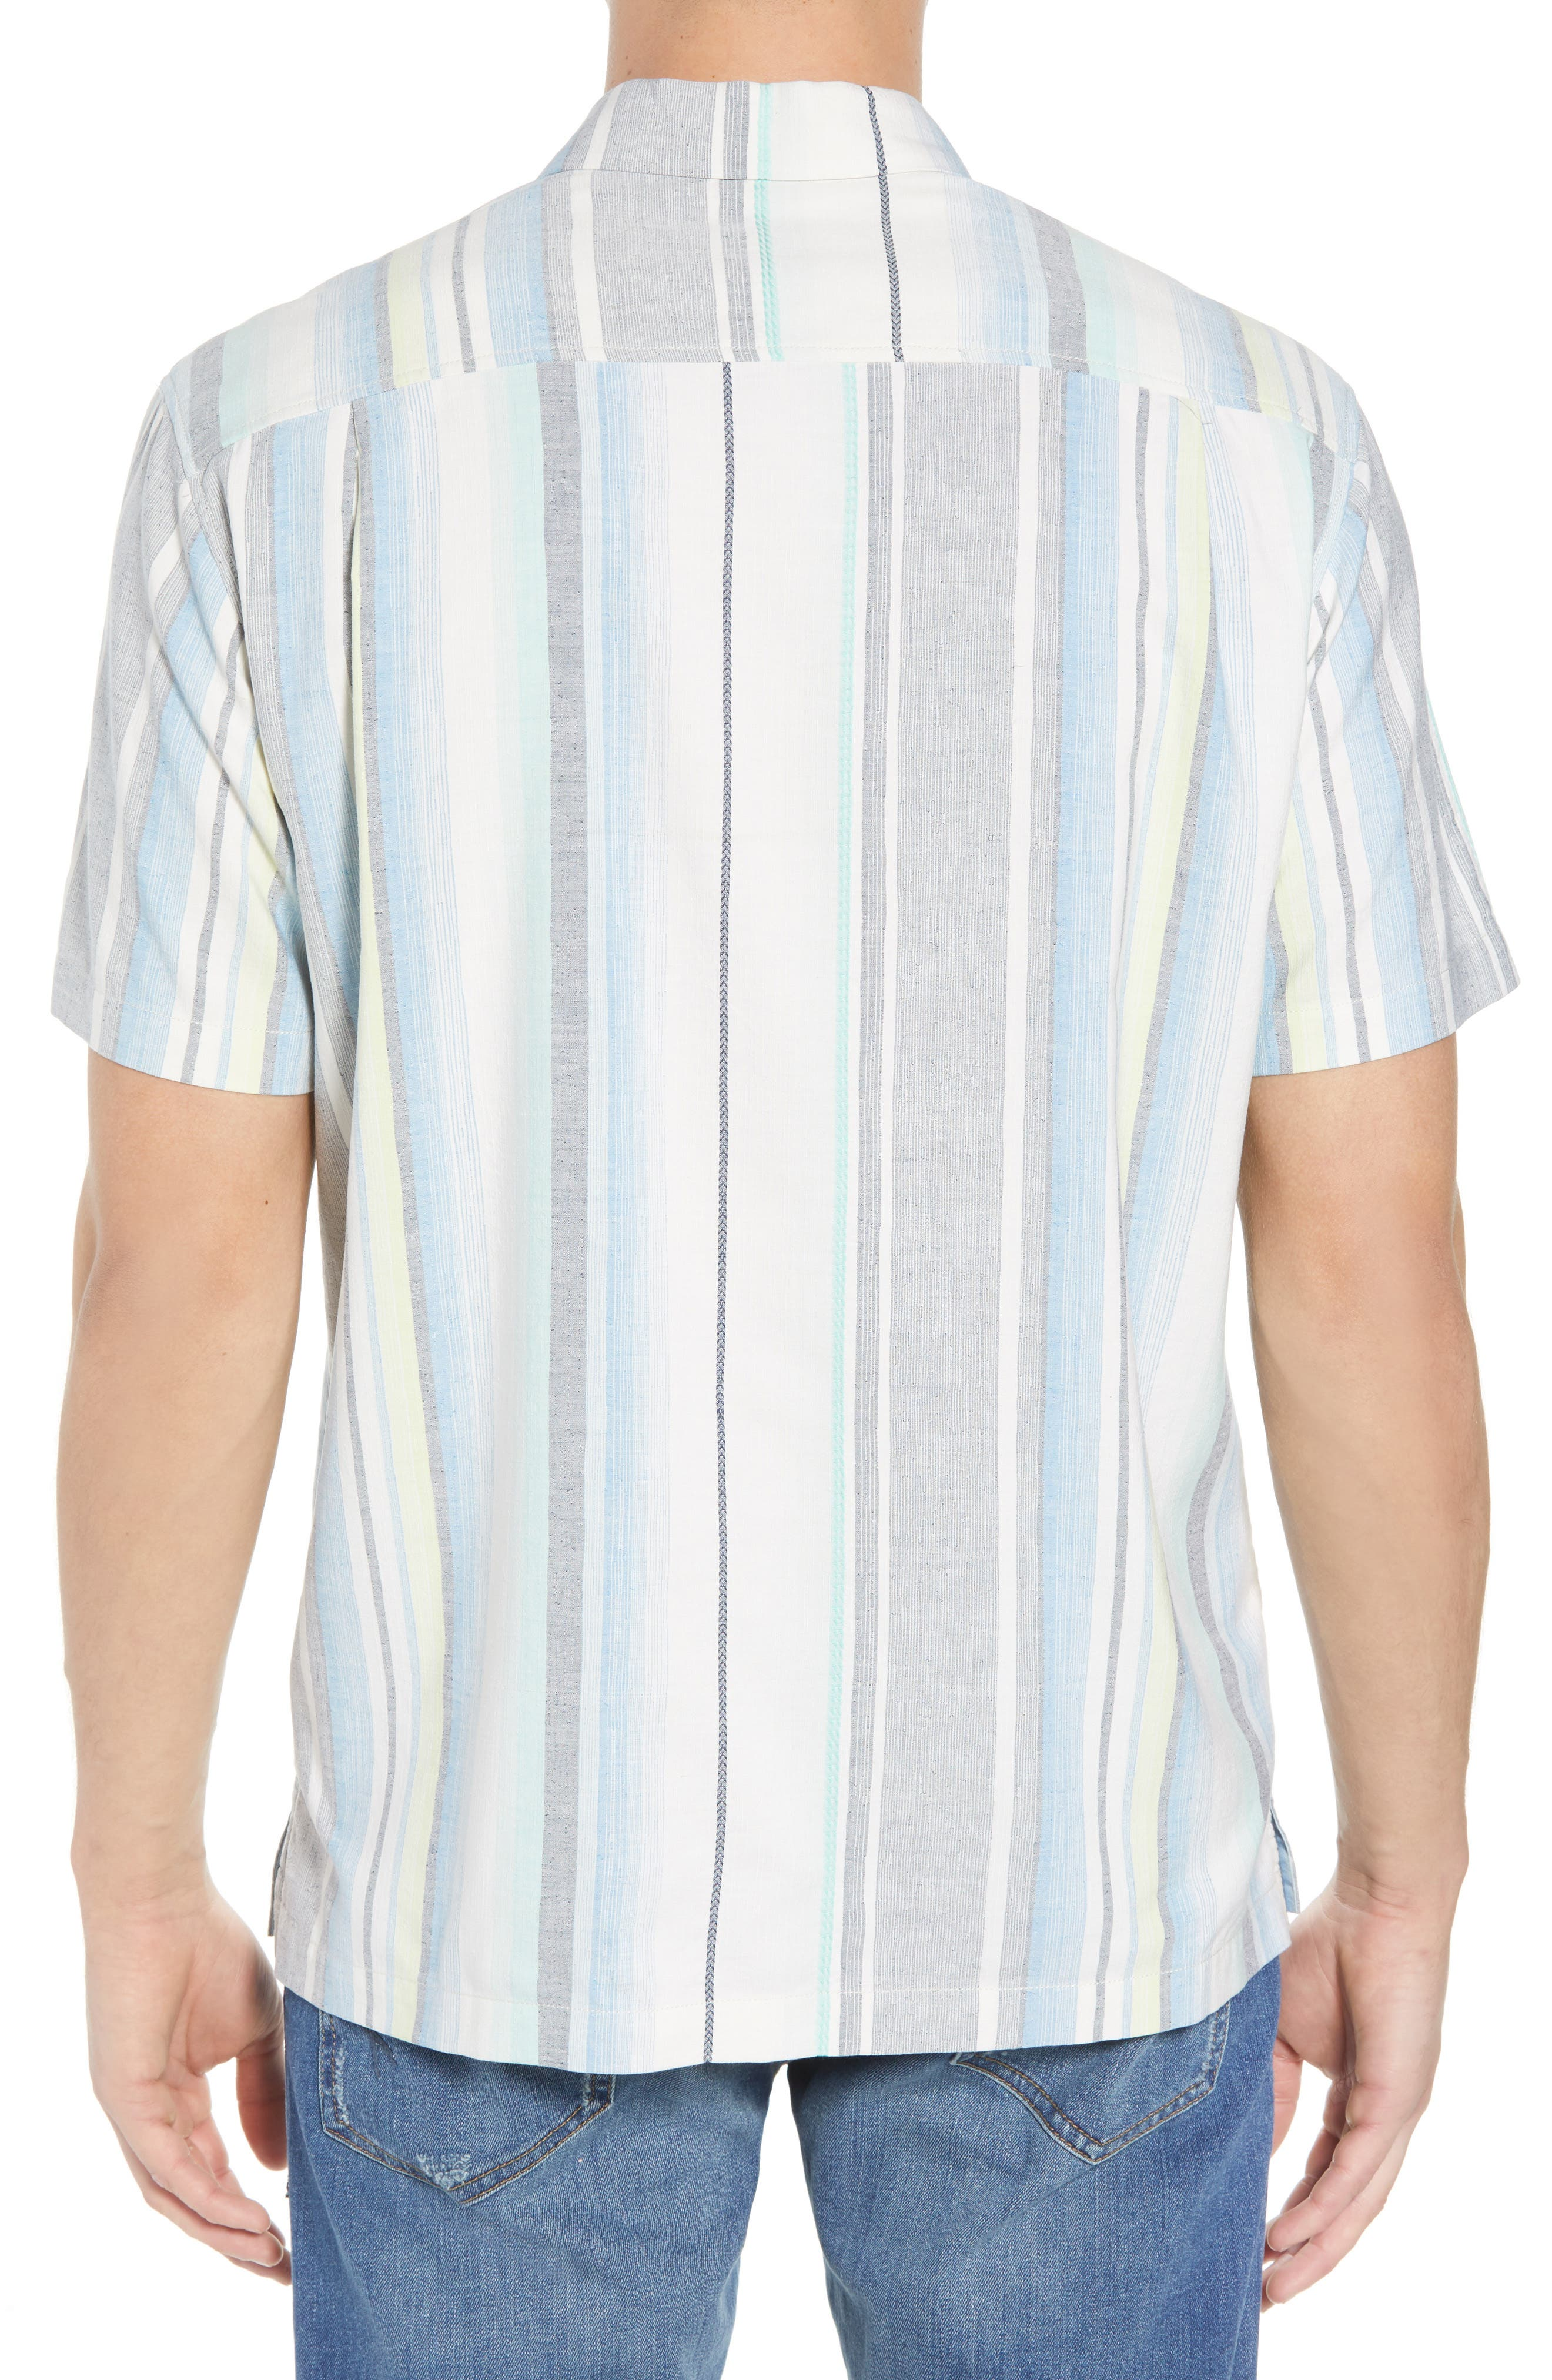 Posado Sands Silk Camp Shirt,                             Alternate thumbnail 2, color,                             BLUE ASTER